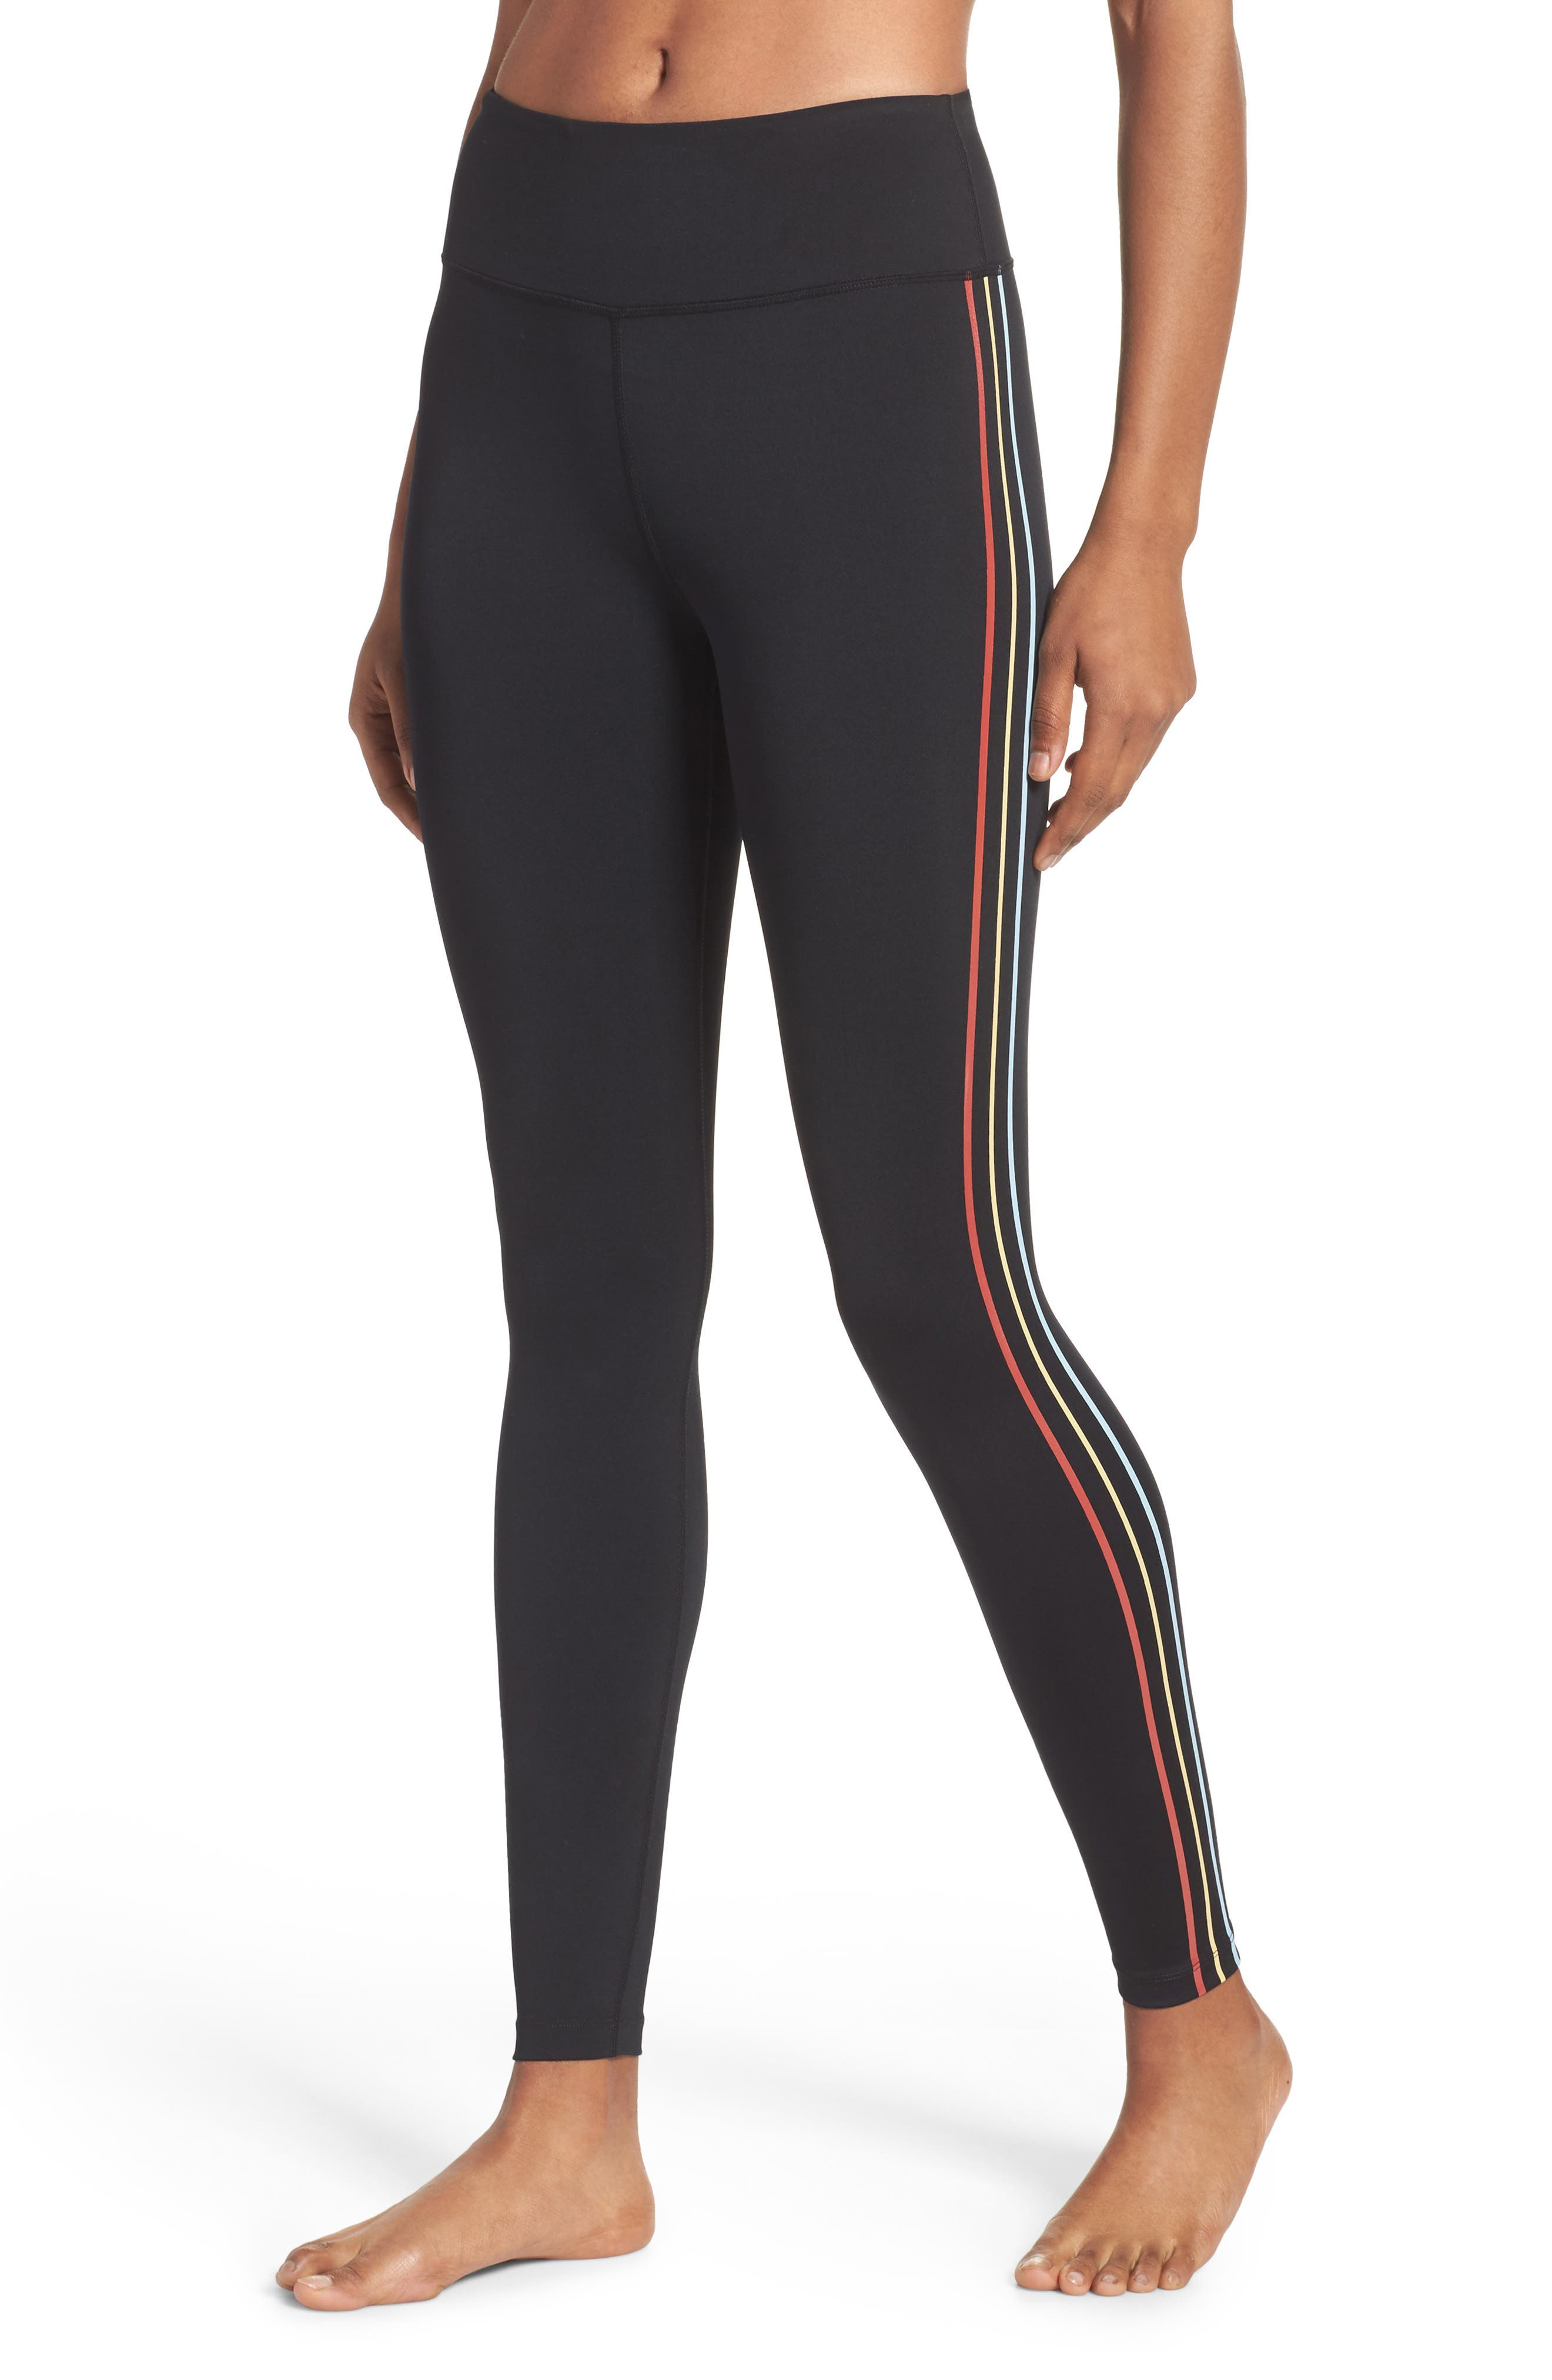 Splits59 Anchor Ankle Tights